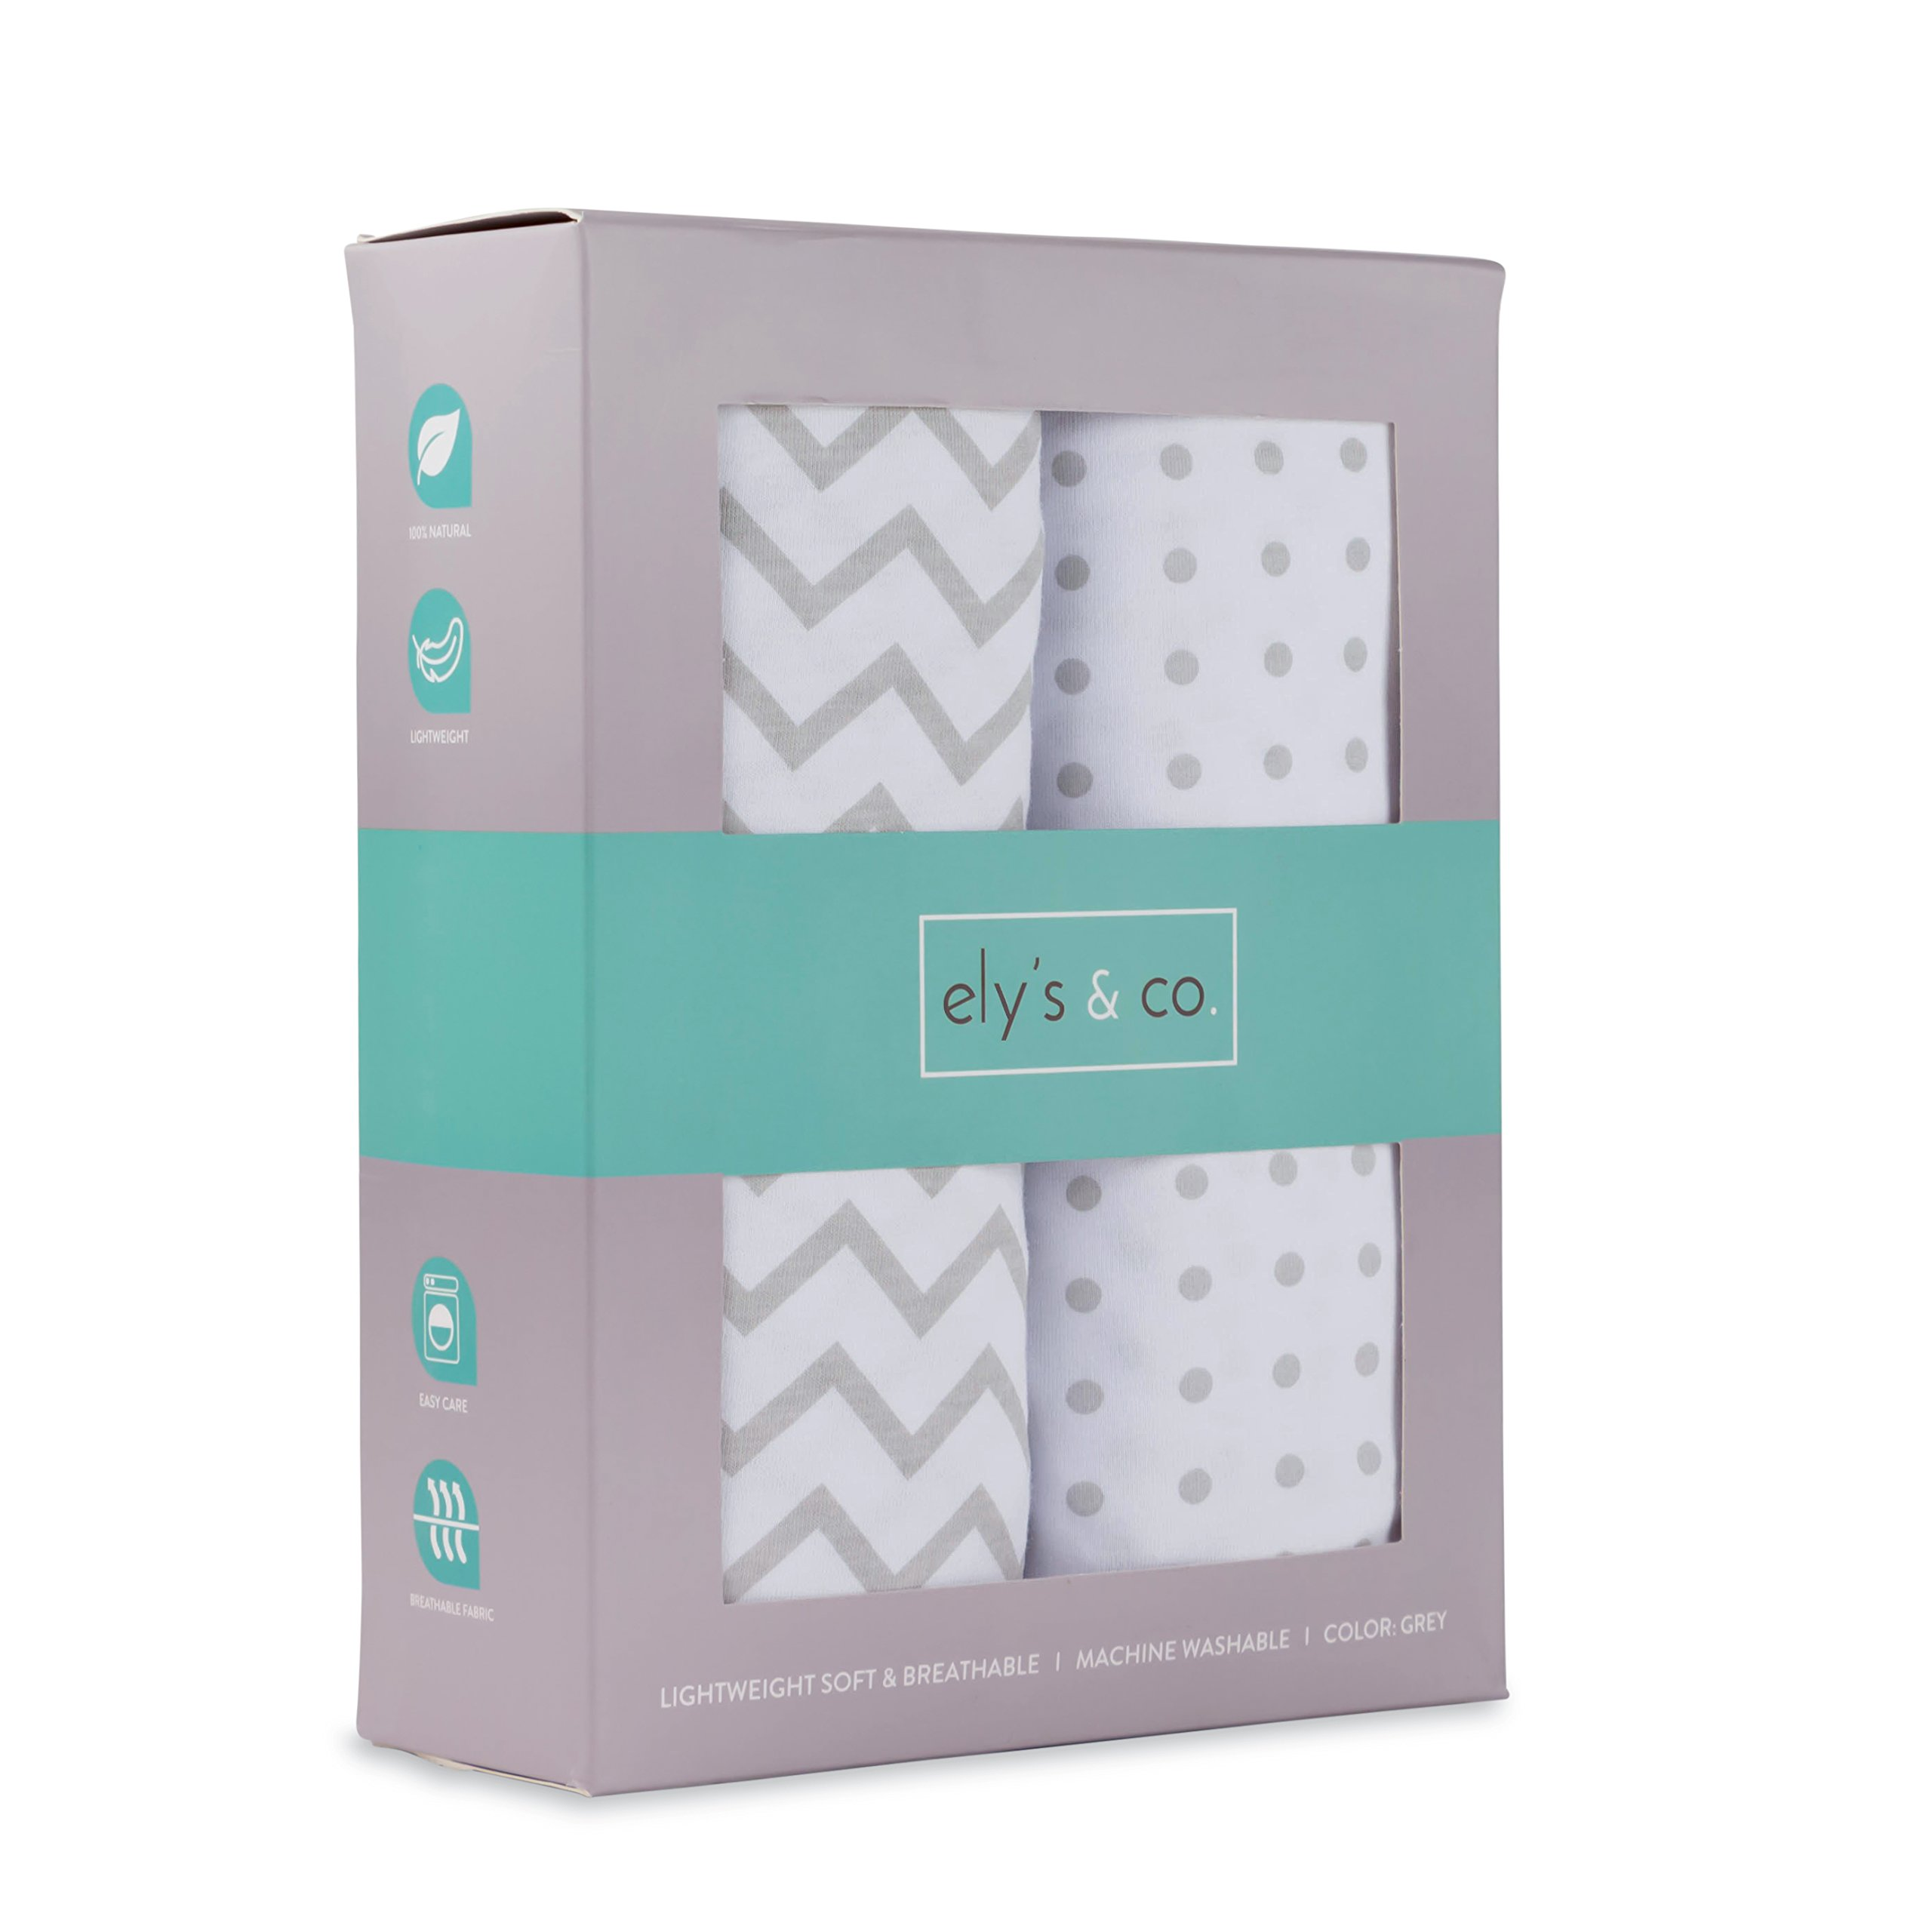 Pack N Play Portable Crib Sheet Set 100% Jersey Cotton Unisex for Baby Girl and Baby Boy by Ely's & Co. (Grey Chevron and Polka Dot) by Ely's & Co